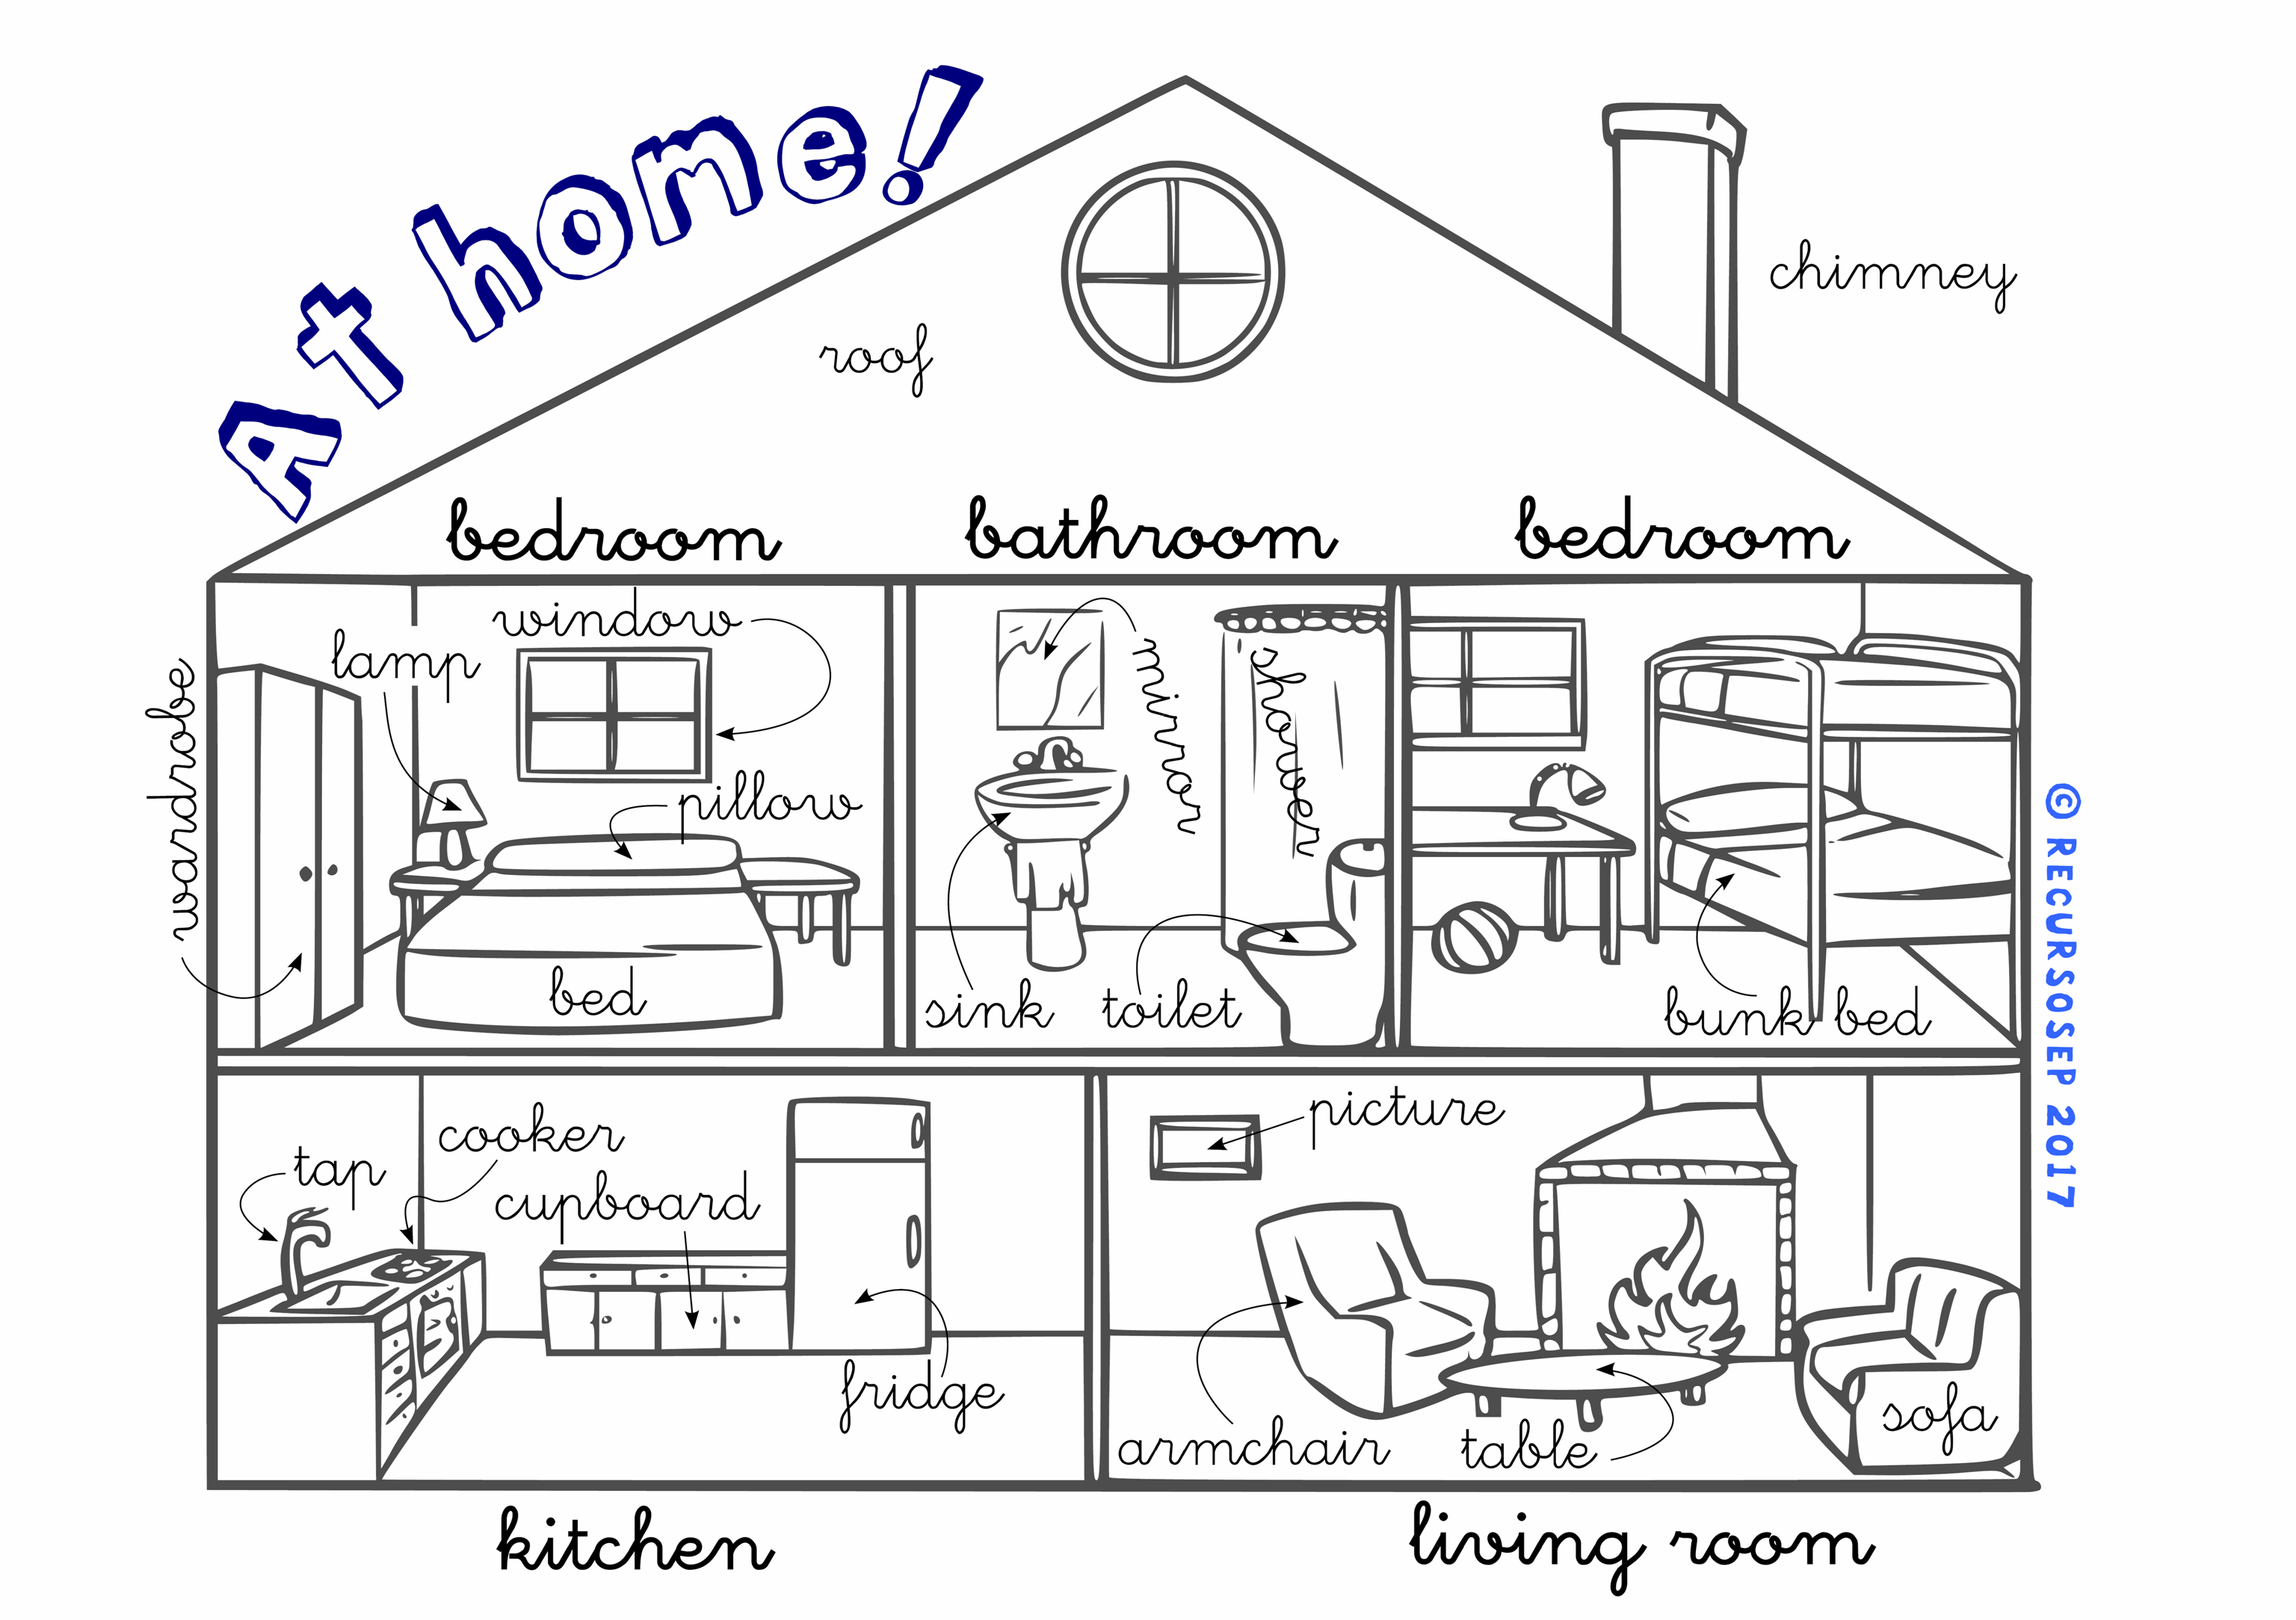 at-home-la-casa-partes-y-objetos-inglés